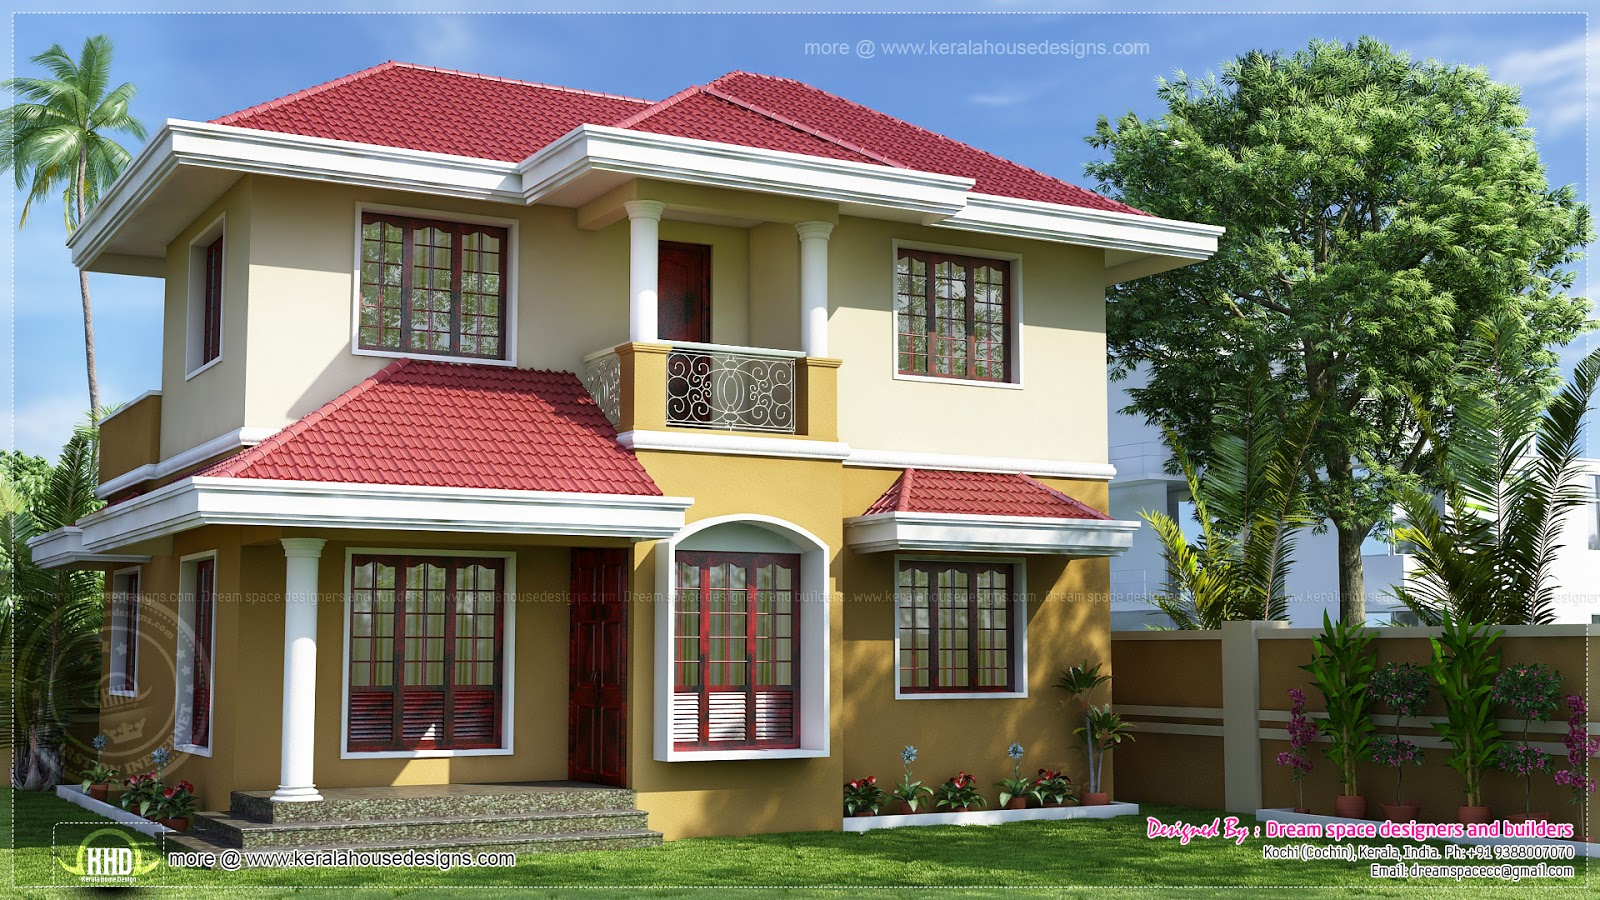 Villa with 3 bed appropriate in a 3 cents of land kerala for Villa plans and designs